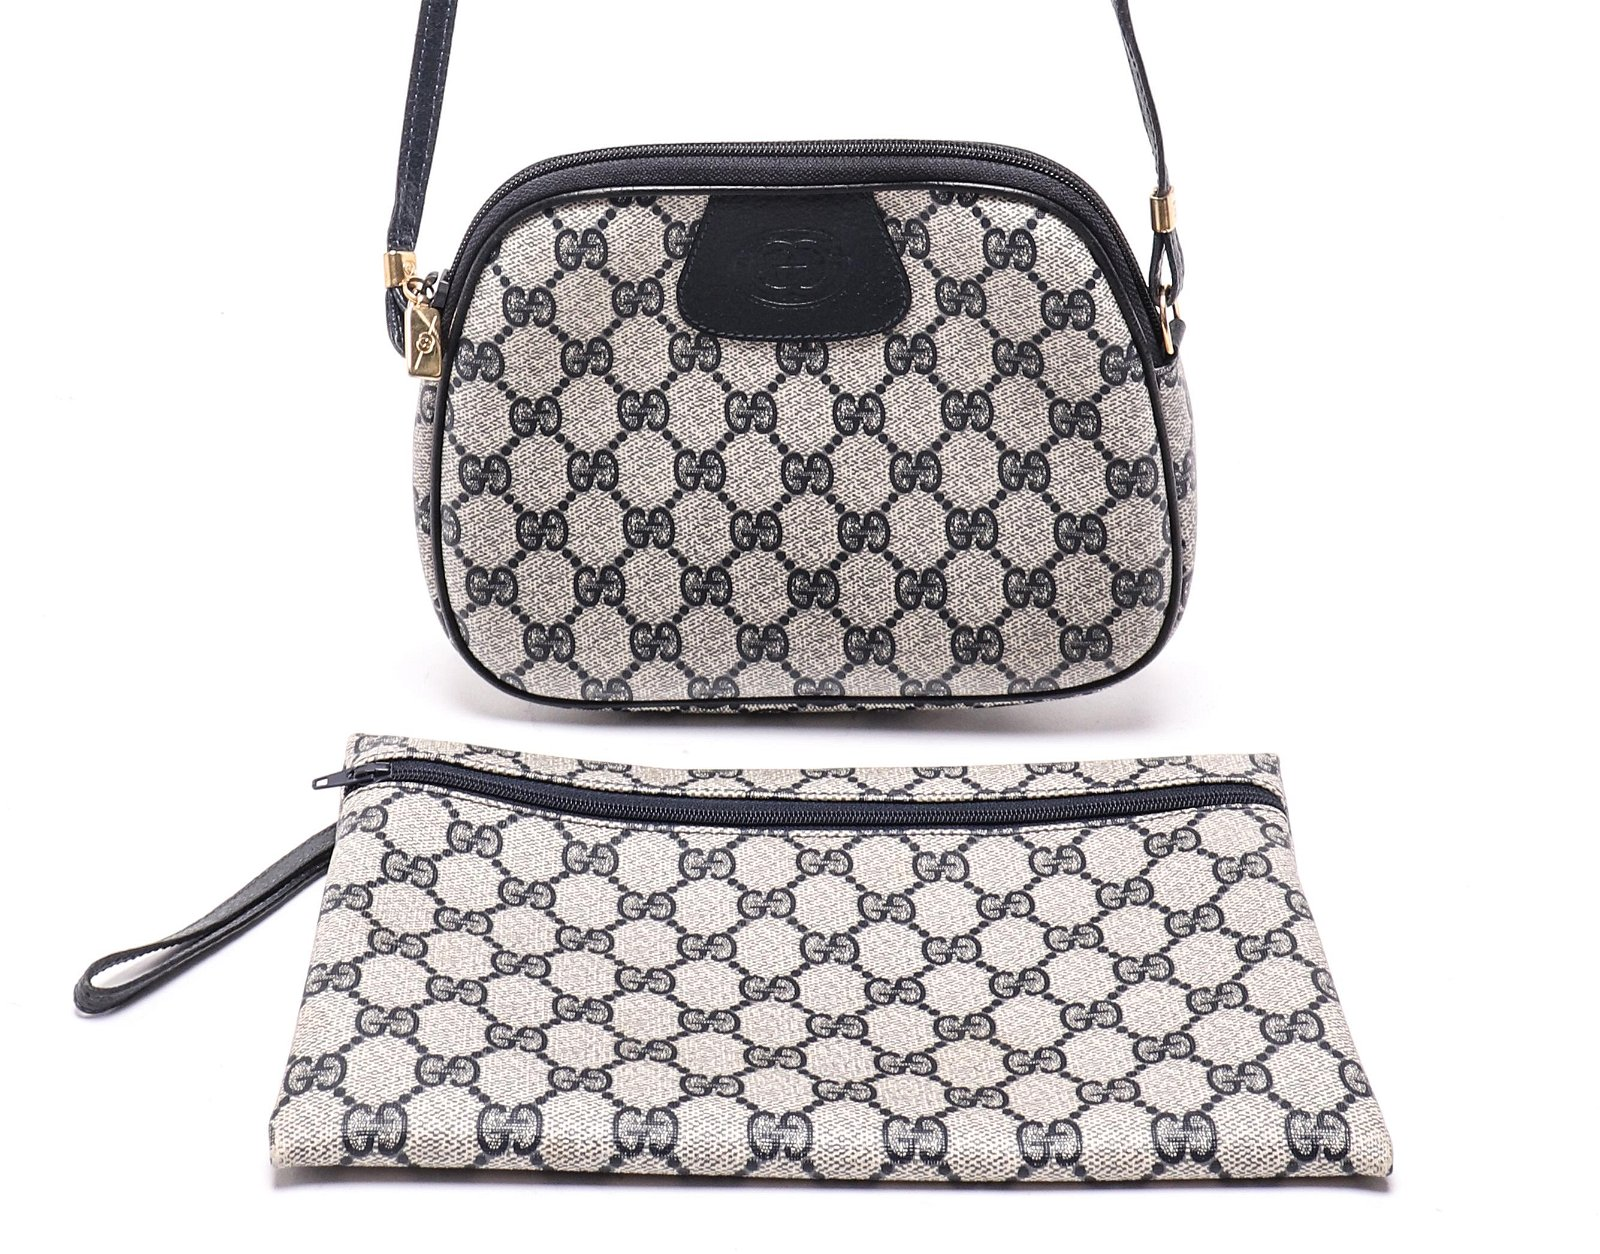 Gucci Monogram Canvas & Leather Handbags, 2